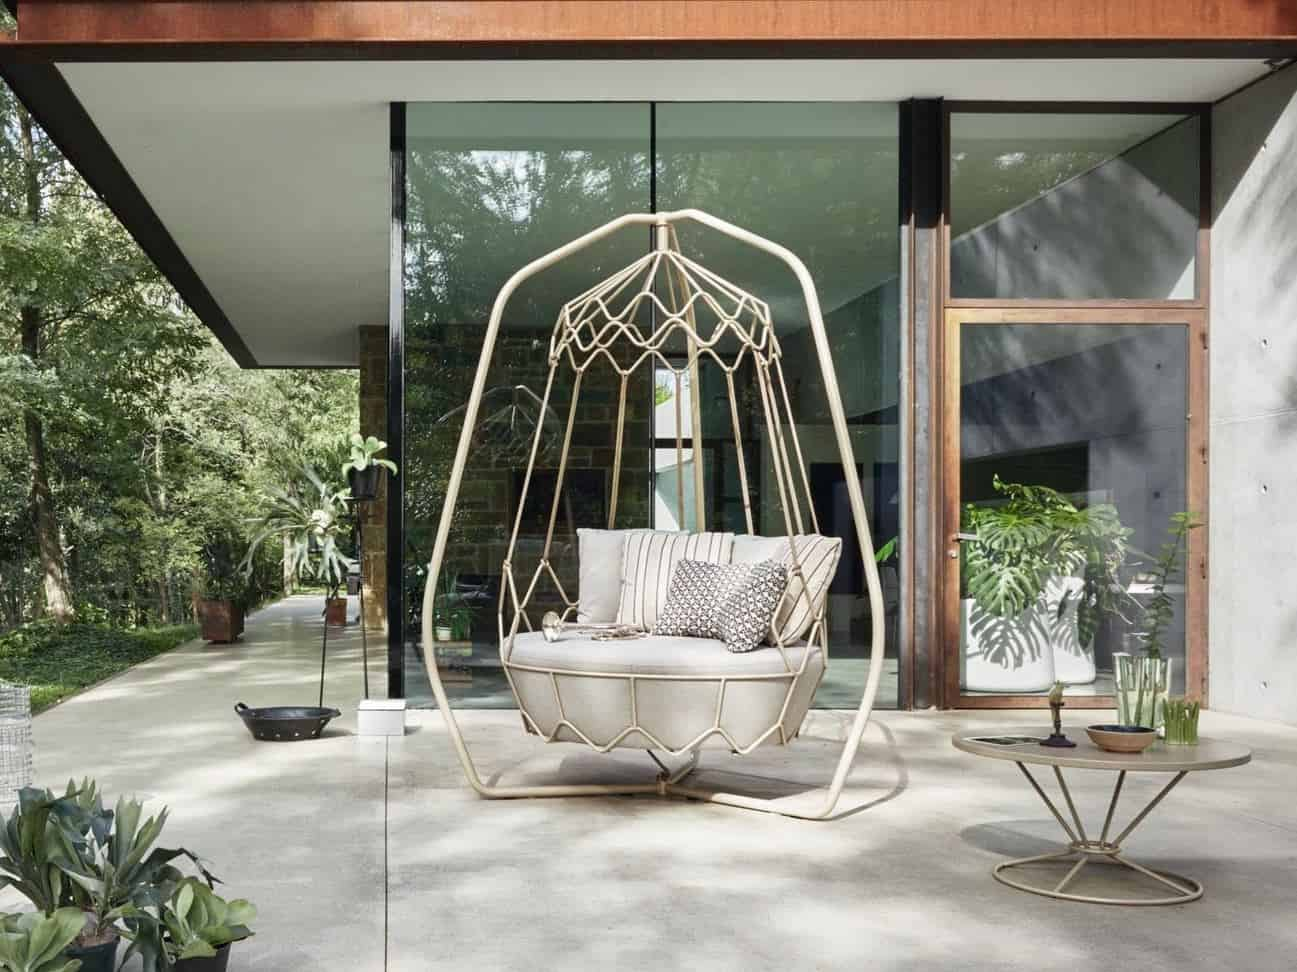 garden furniture from roberti rattan. Black Bedroom Furniture Sets. Home Design Ideas